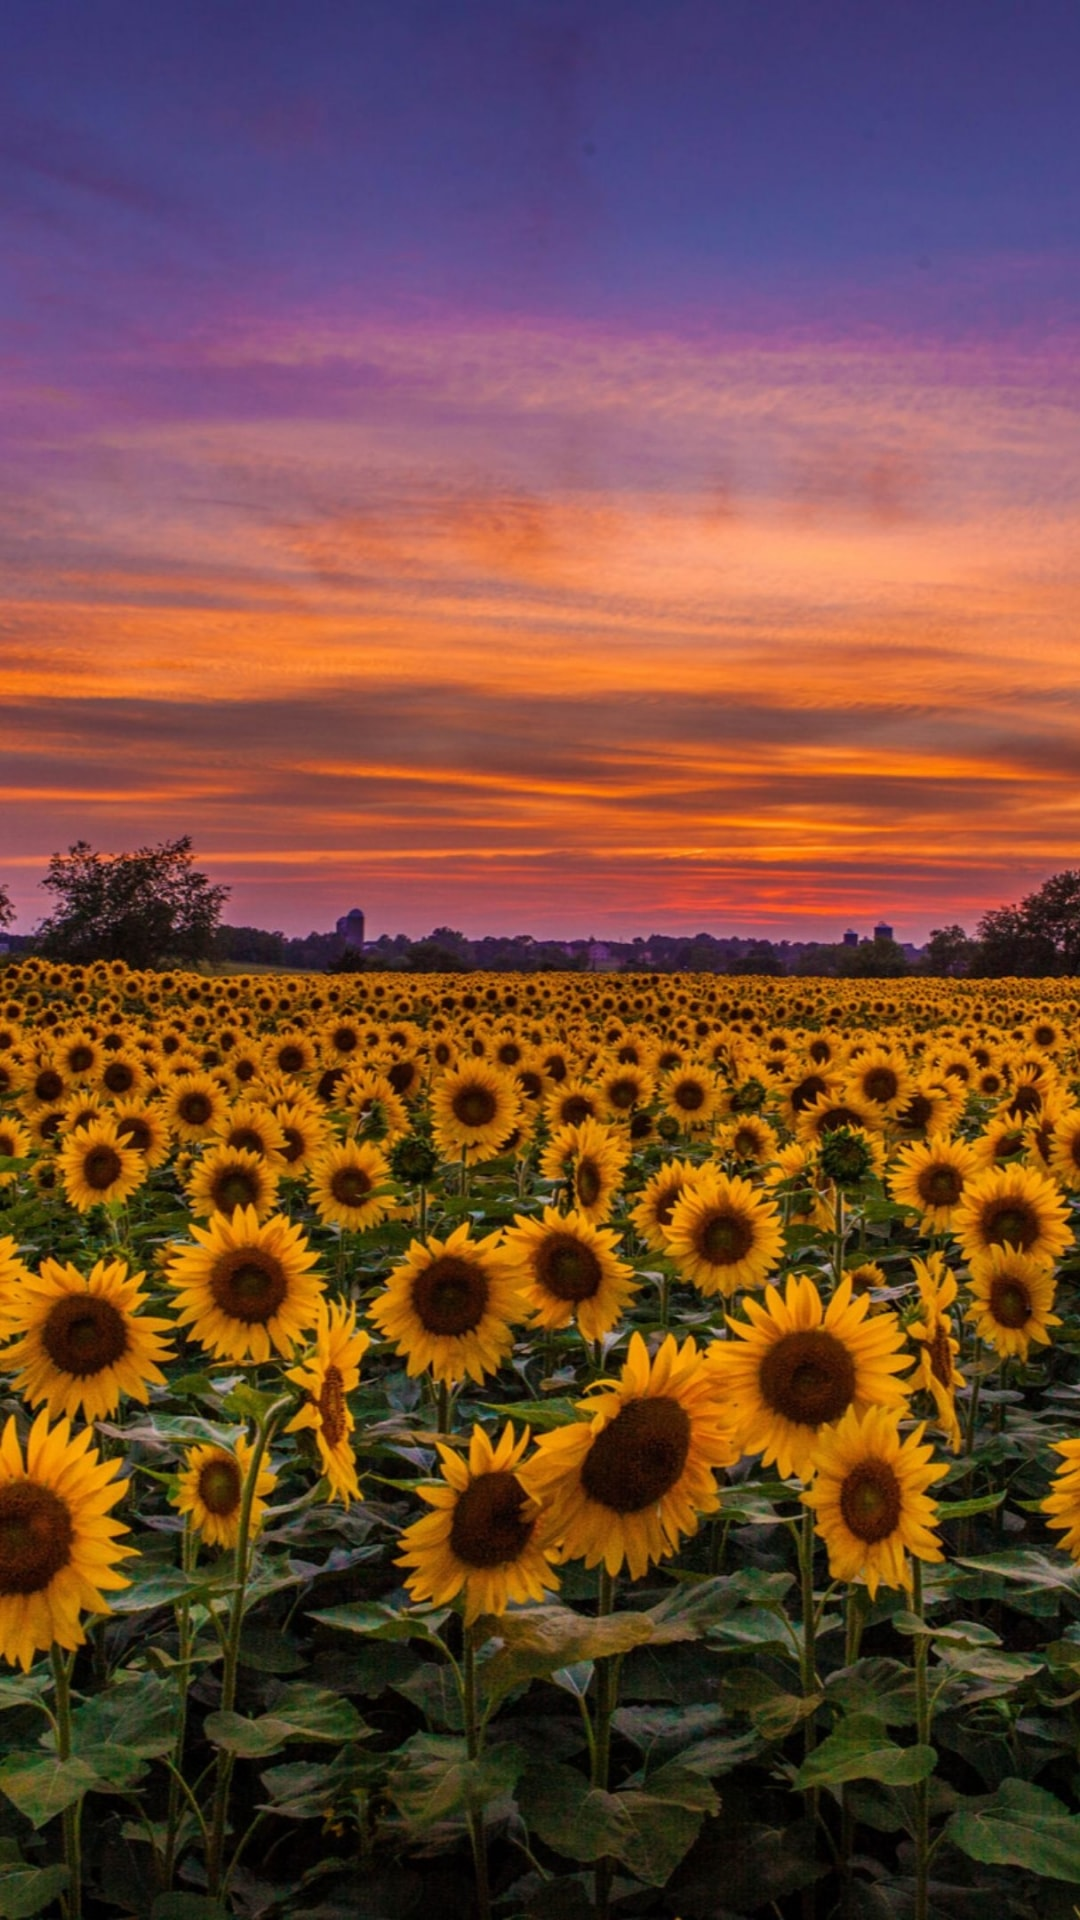 The ability to customize your display to. Iphone Sunflower Wallpaper - KoLPaPer - Awesome Free HD